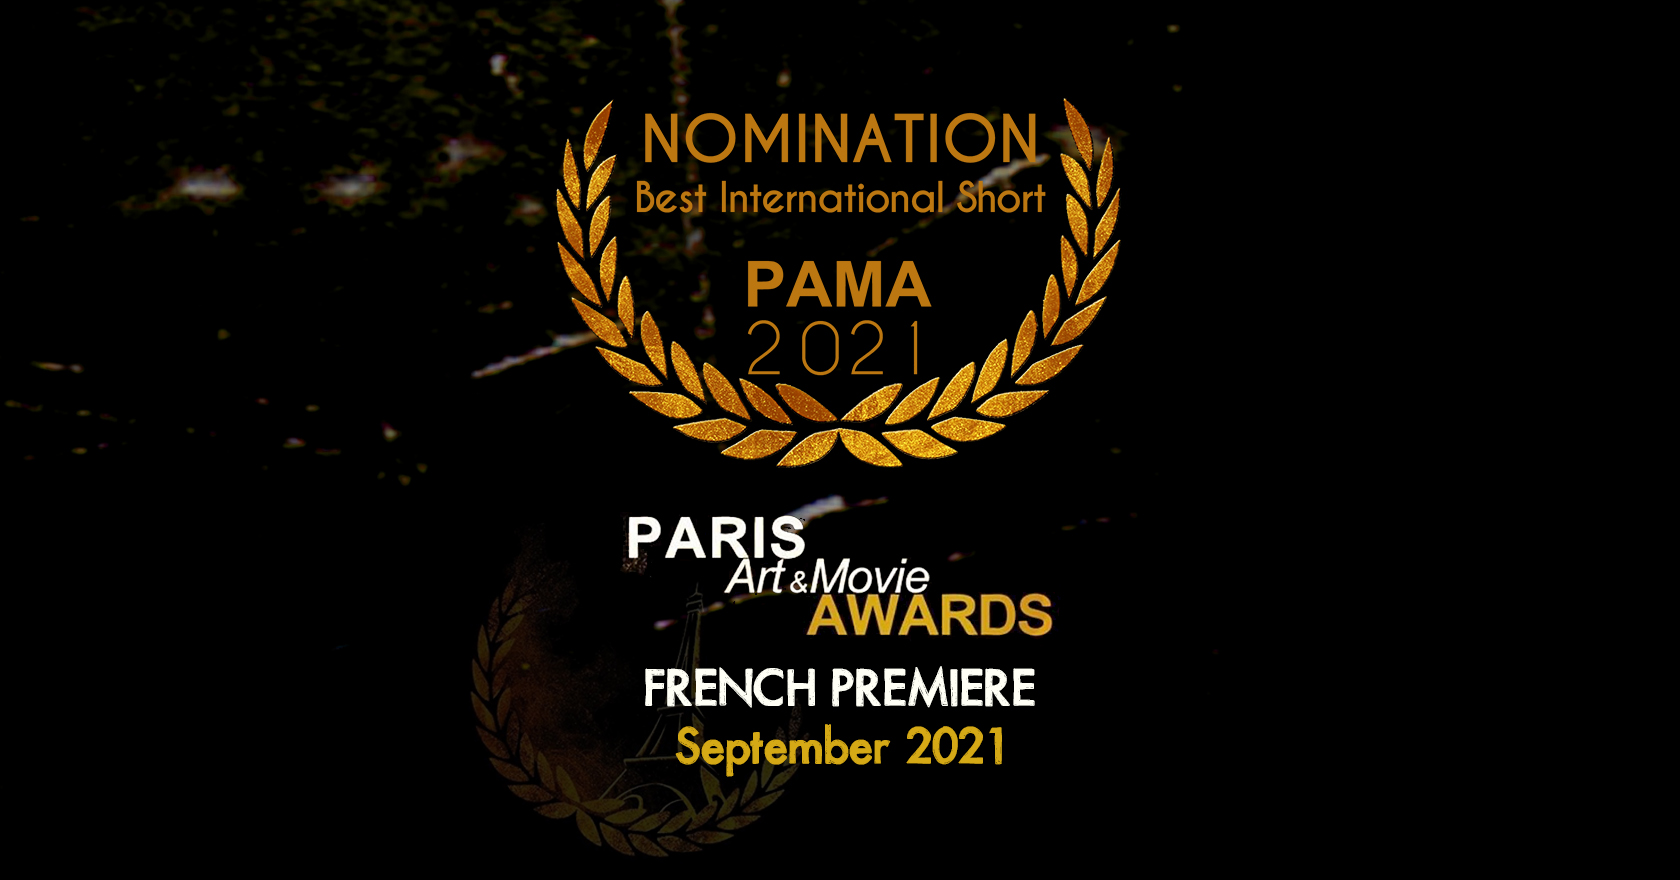 French Premiere at Paris Art Movie Awards 2021 | September 1-12